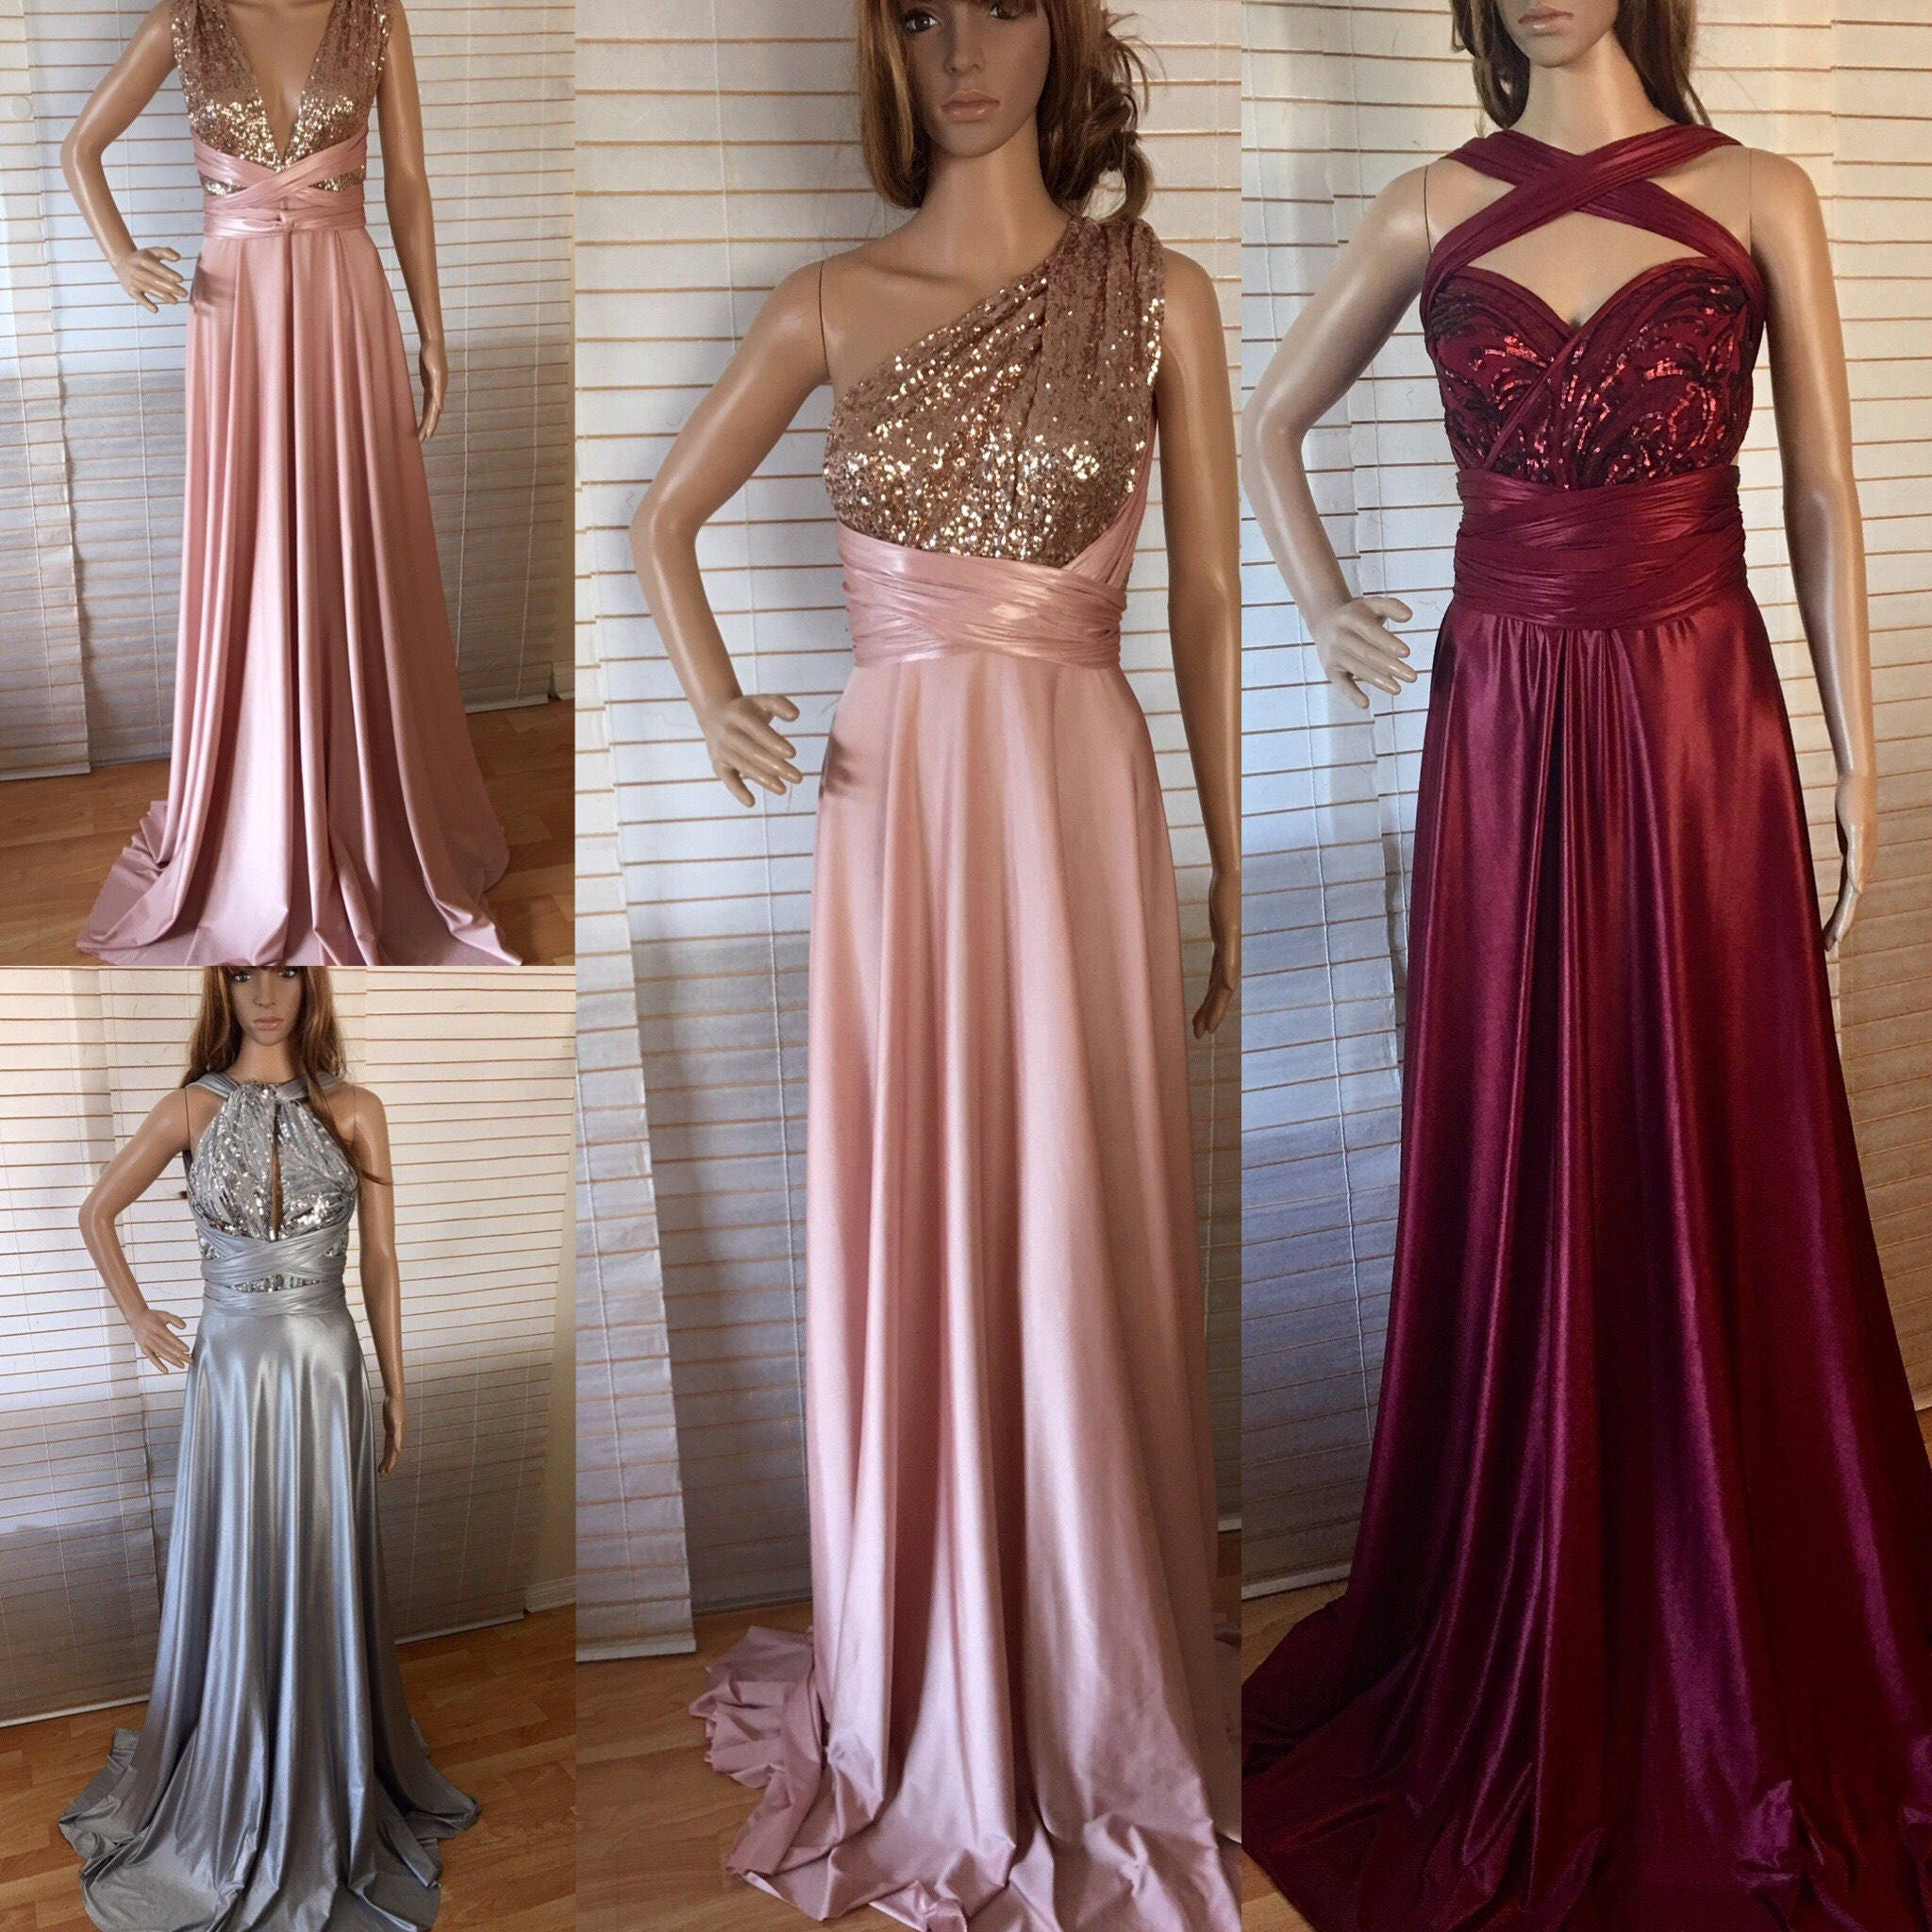 Bridesmaid dresses multiple ways to wear image collections bridesmaid dresses convertible bridesmaid dress by vaneldesign bridesmaid dress blush grey burgundy sequins infinity bridesmaids dress ombrellifo Image collections